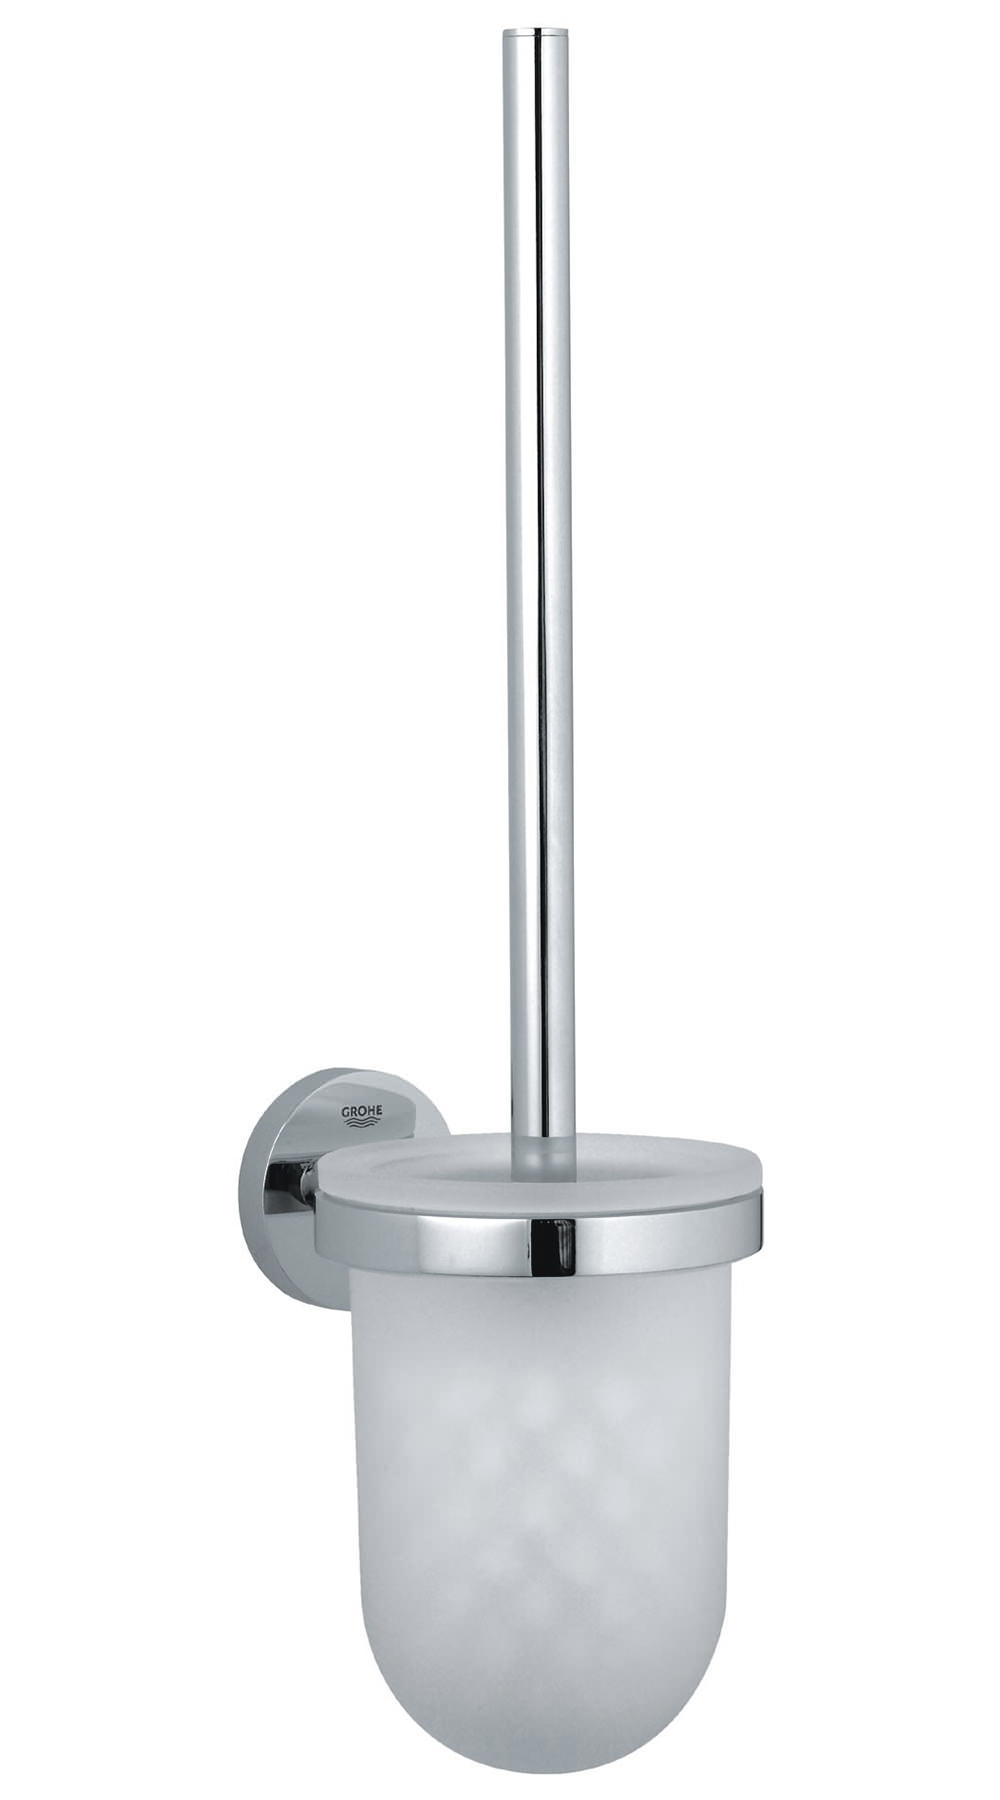 Grohe Essentials Wall Mounted Toilet Brush Set 40374 000